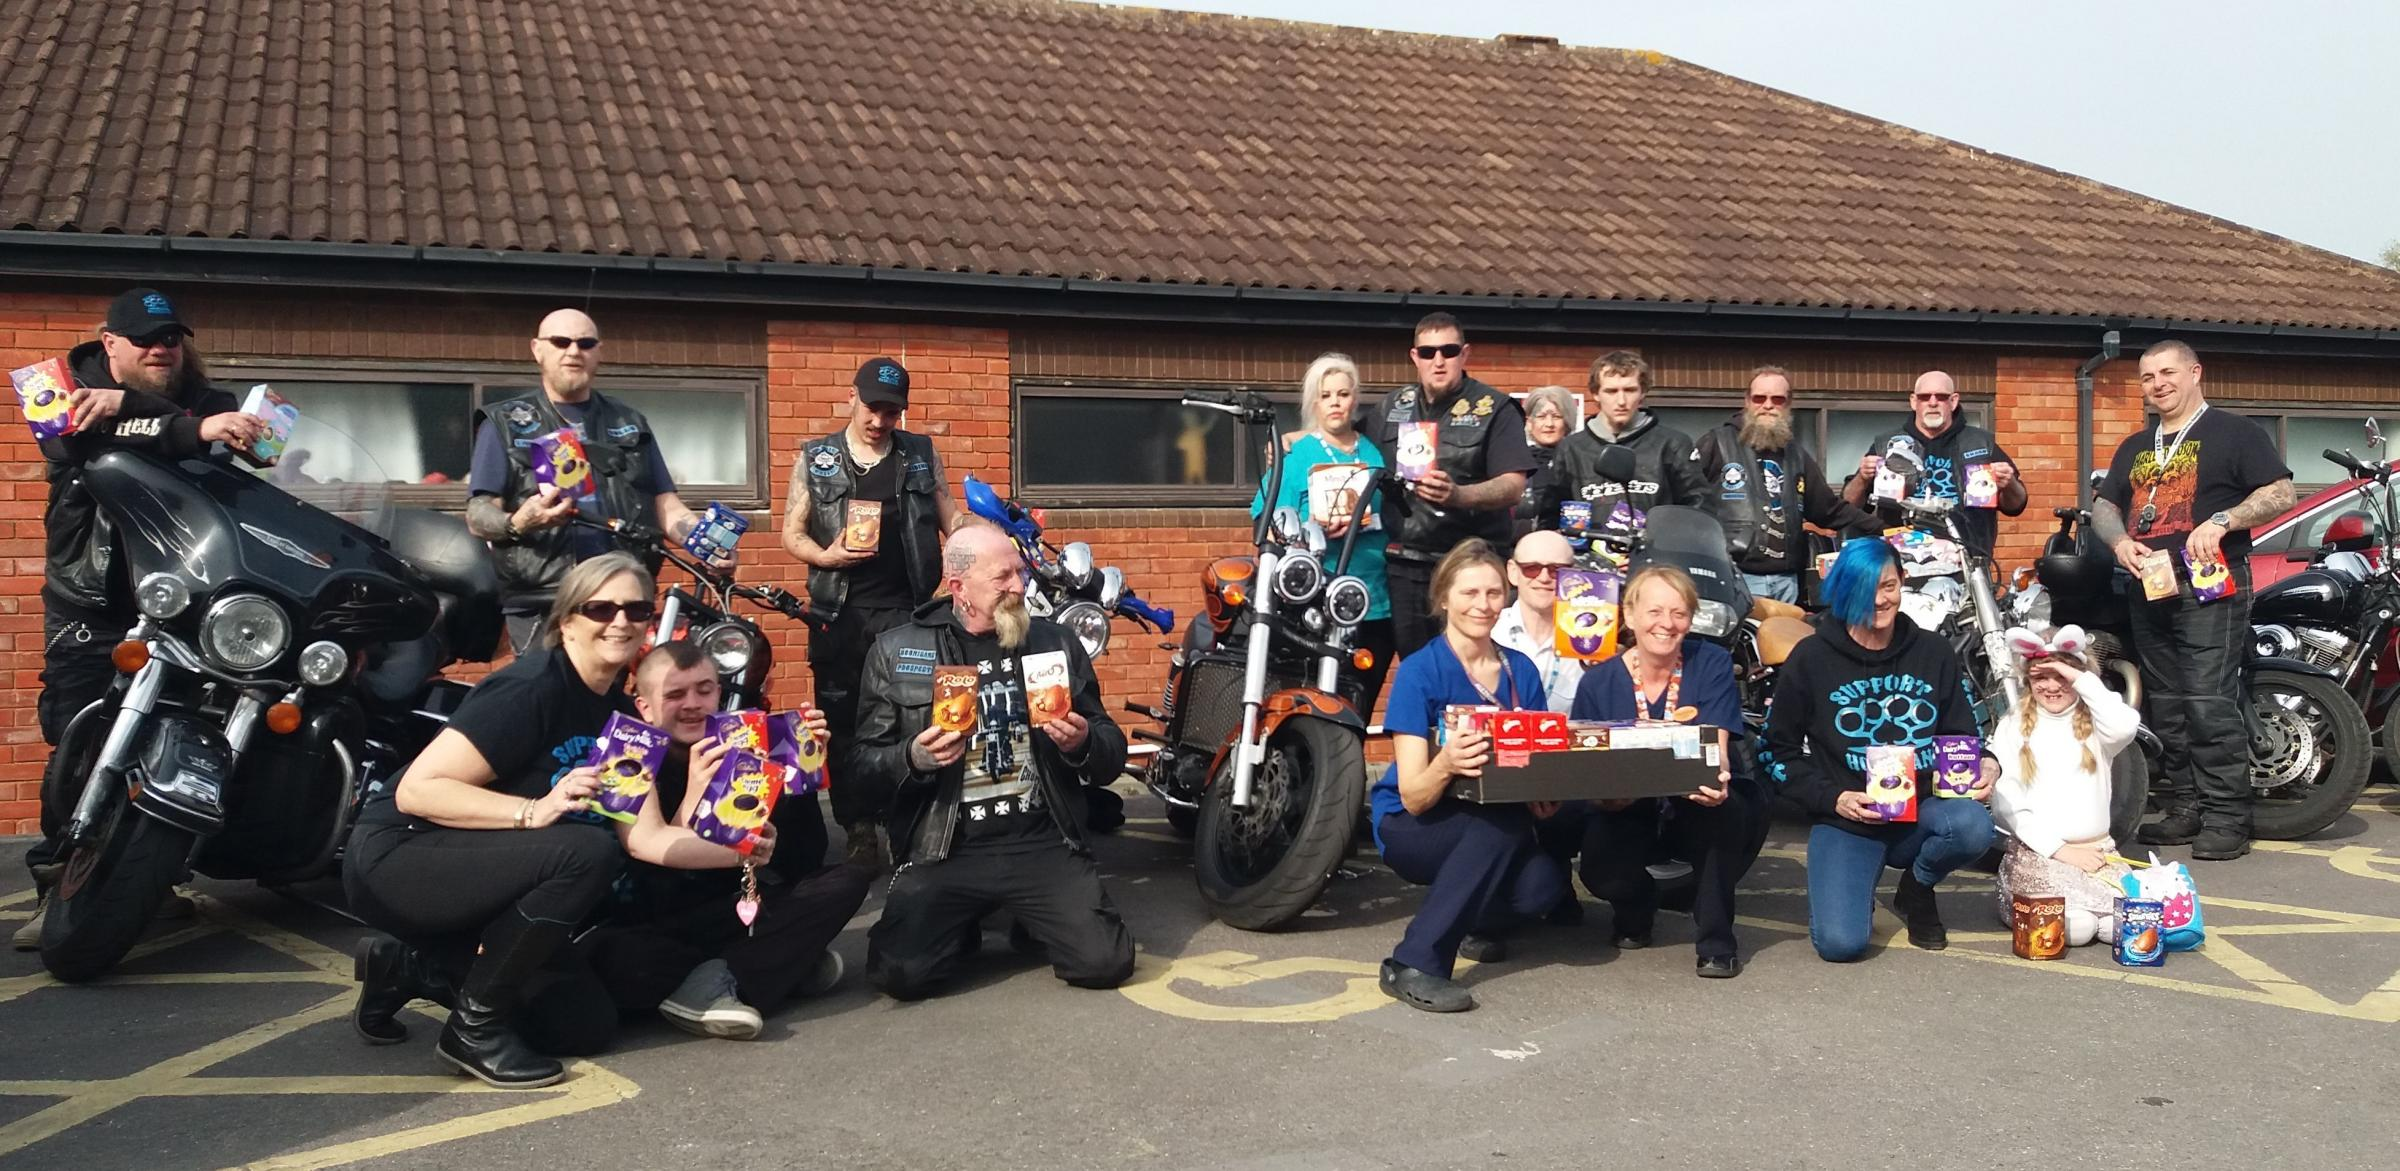 DONATIONS: The Hoonigans Motorcycle Club with NHS staff outside the children's unit